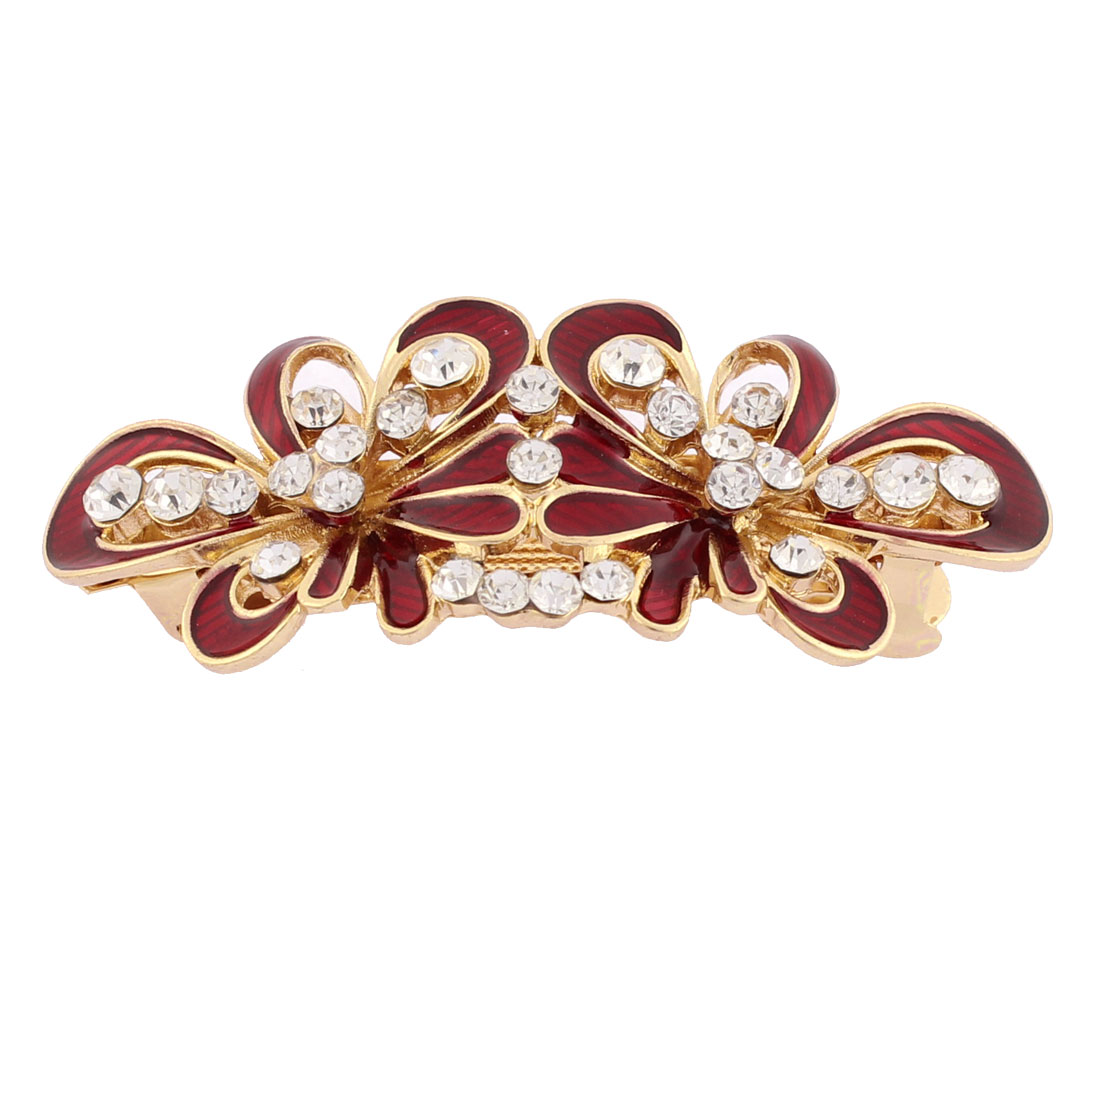 Women Plastic Rhinestone Inlaid Flower Design French Barrette Style Metal Hair Clip Hairpin Gold Tone Red